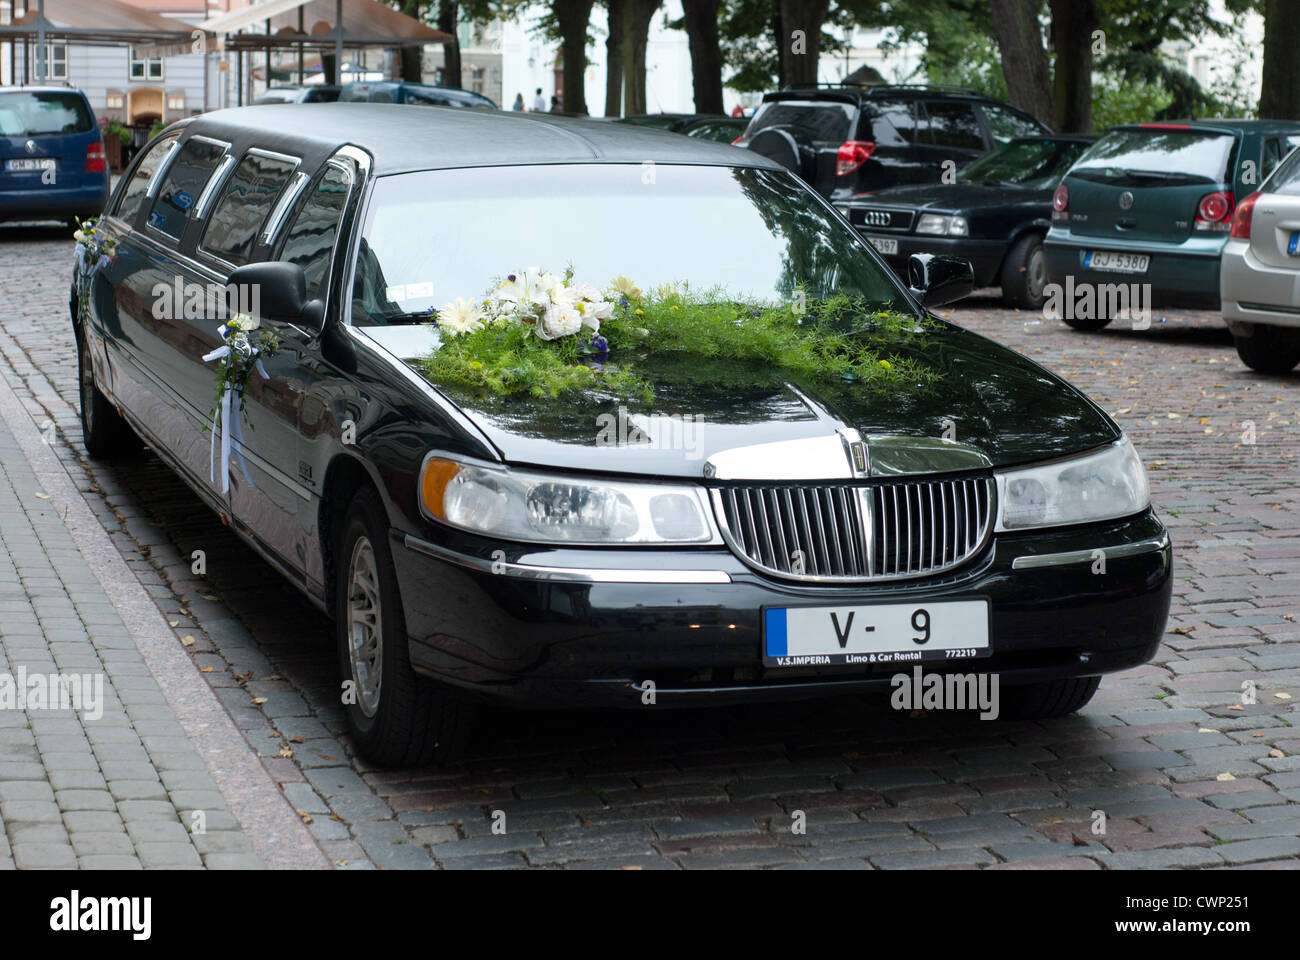 Wedding Limo Lincoln Town Car Black Stock Photo 50271789 Alamy